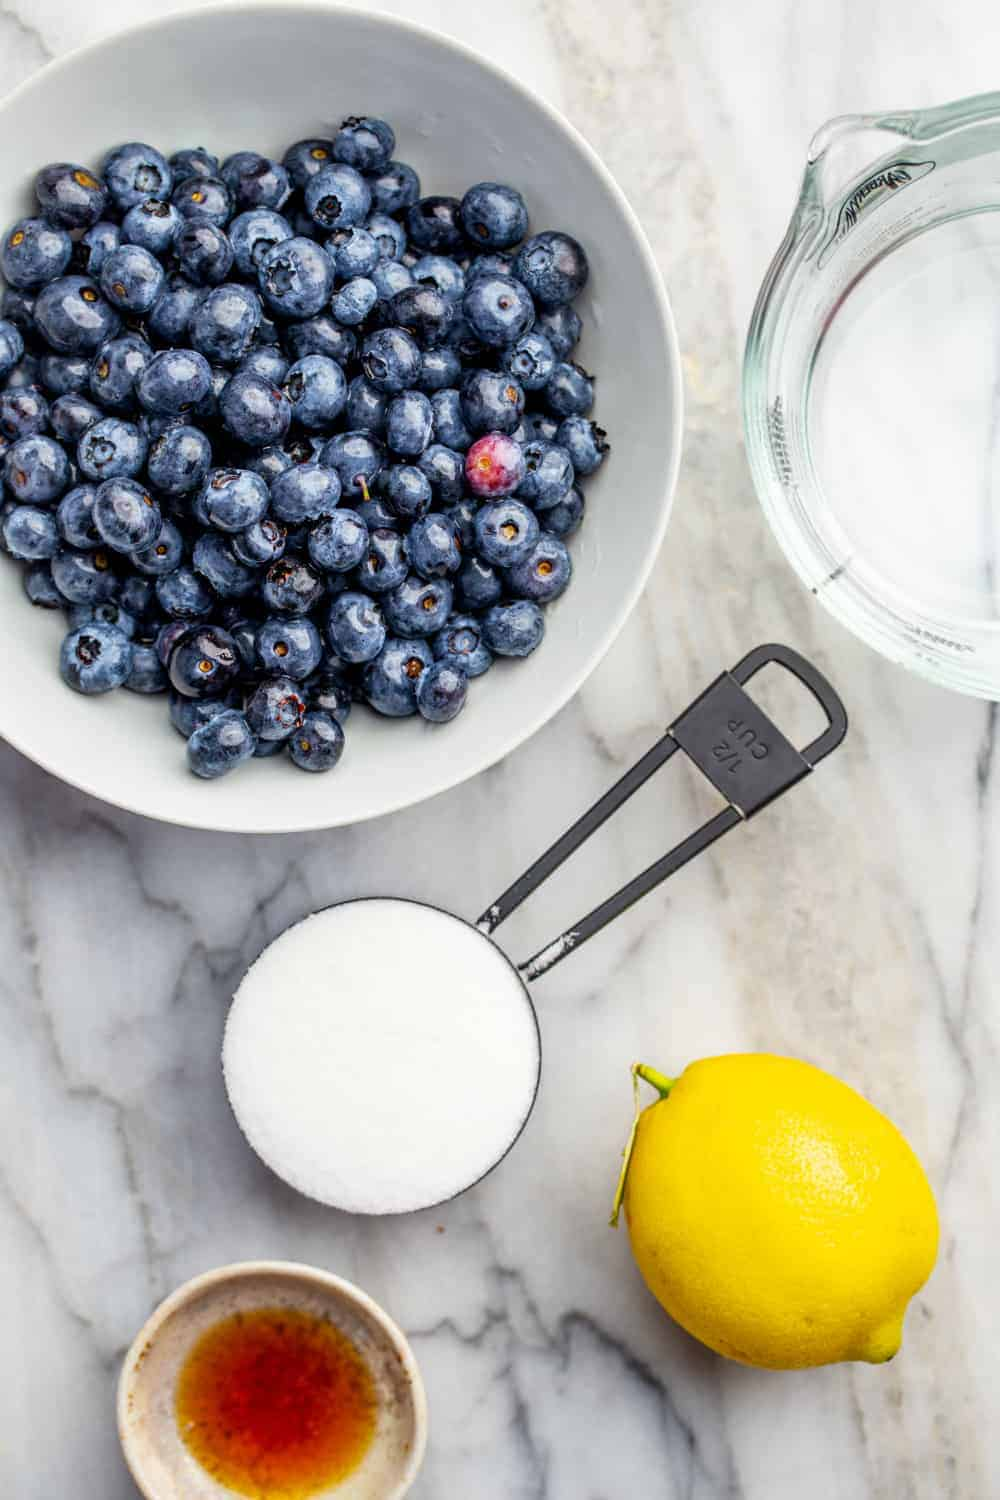 Ingredients for homemade blueberry sauce on a marble surface